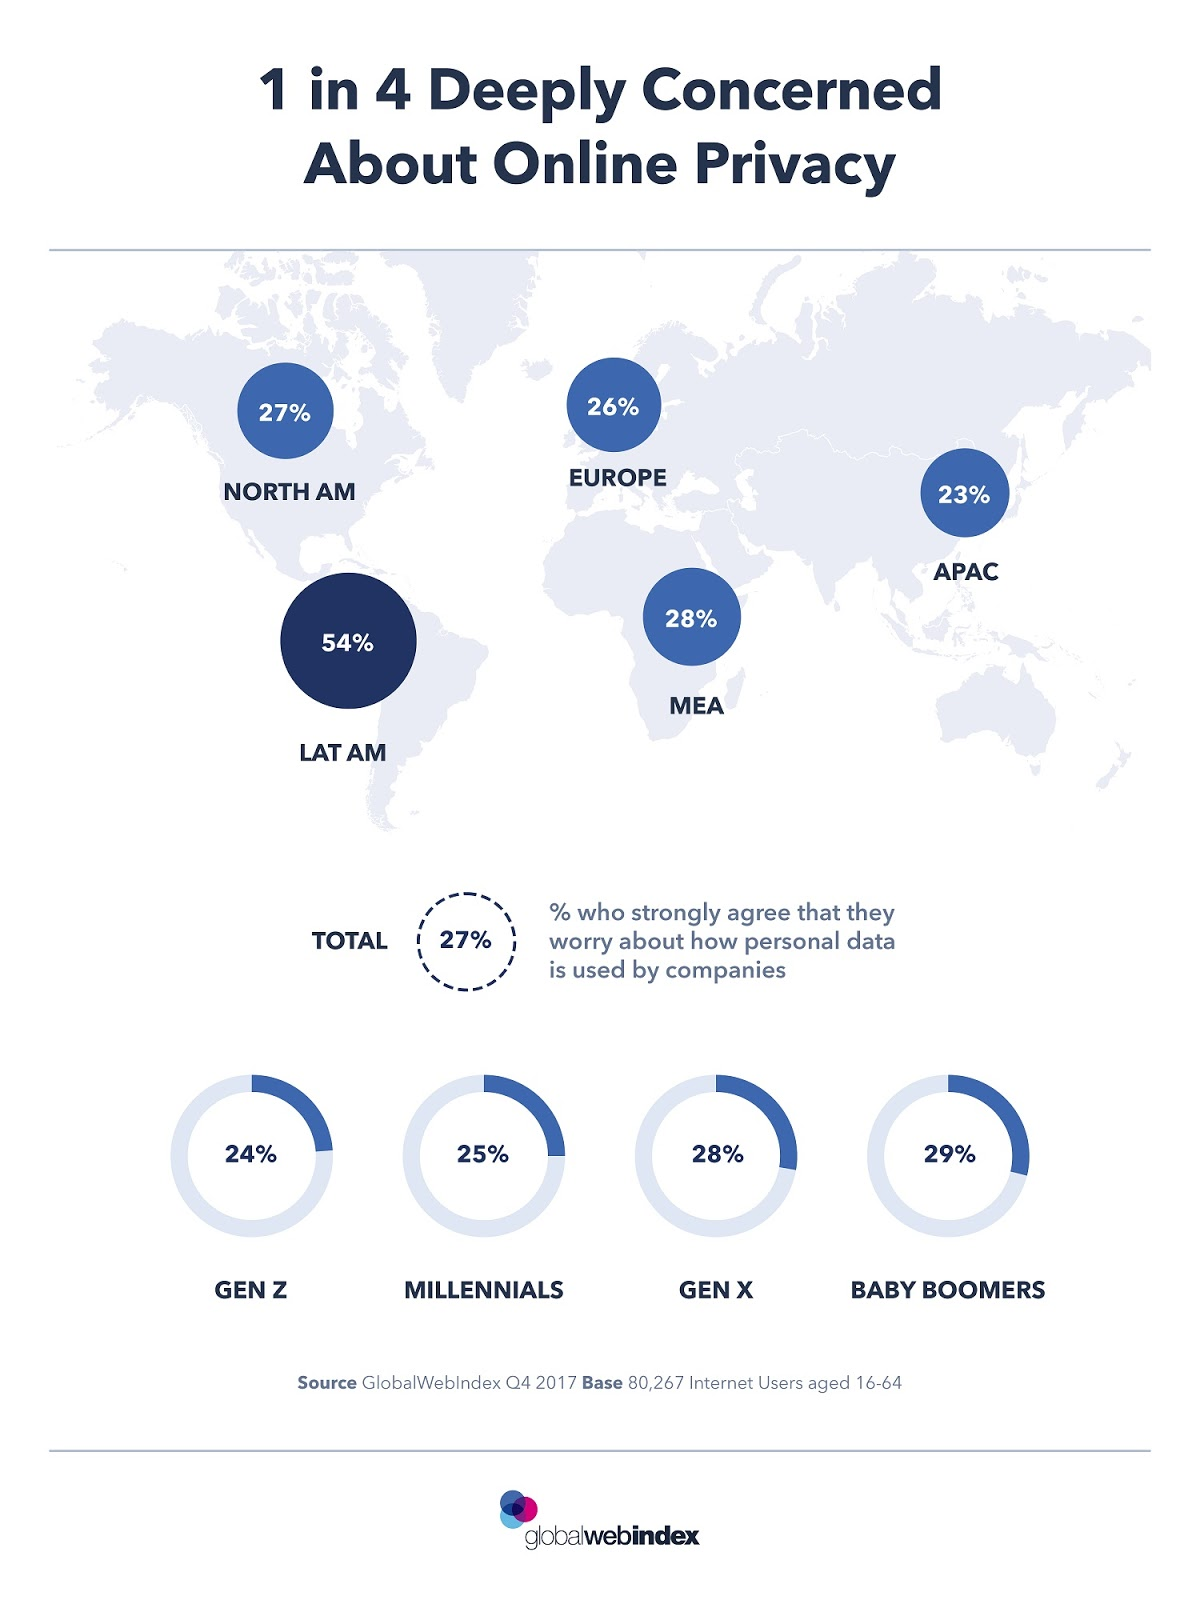 CHART OF THE DAY: 1 in 4 Deeply Concerned About Online Privacy